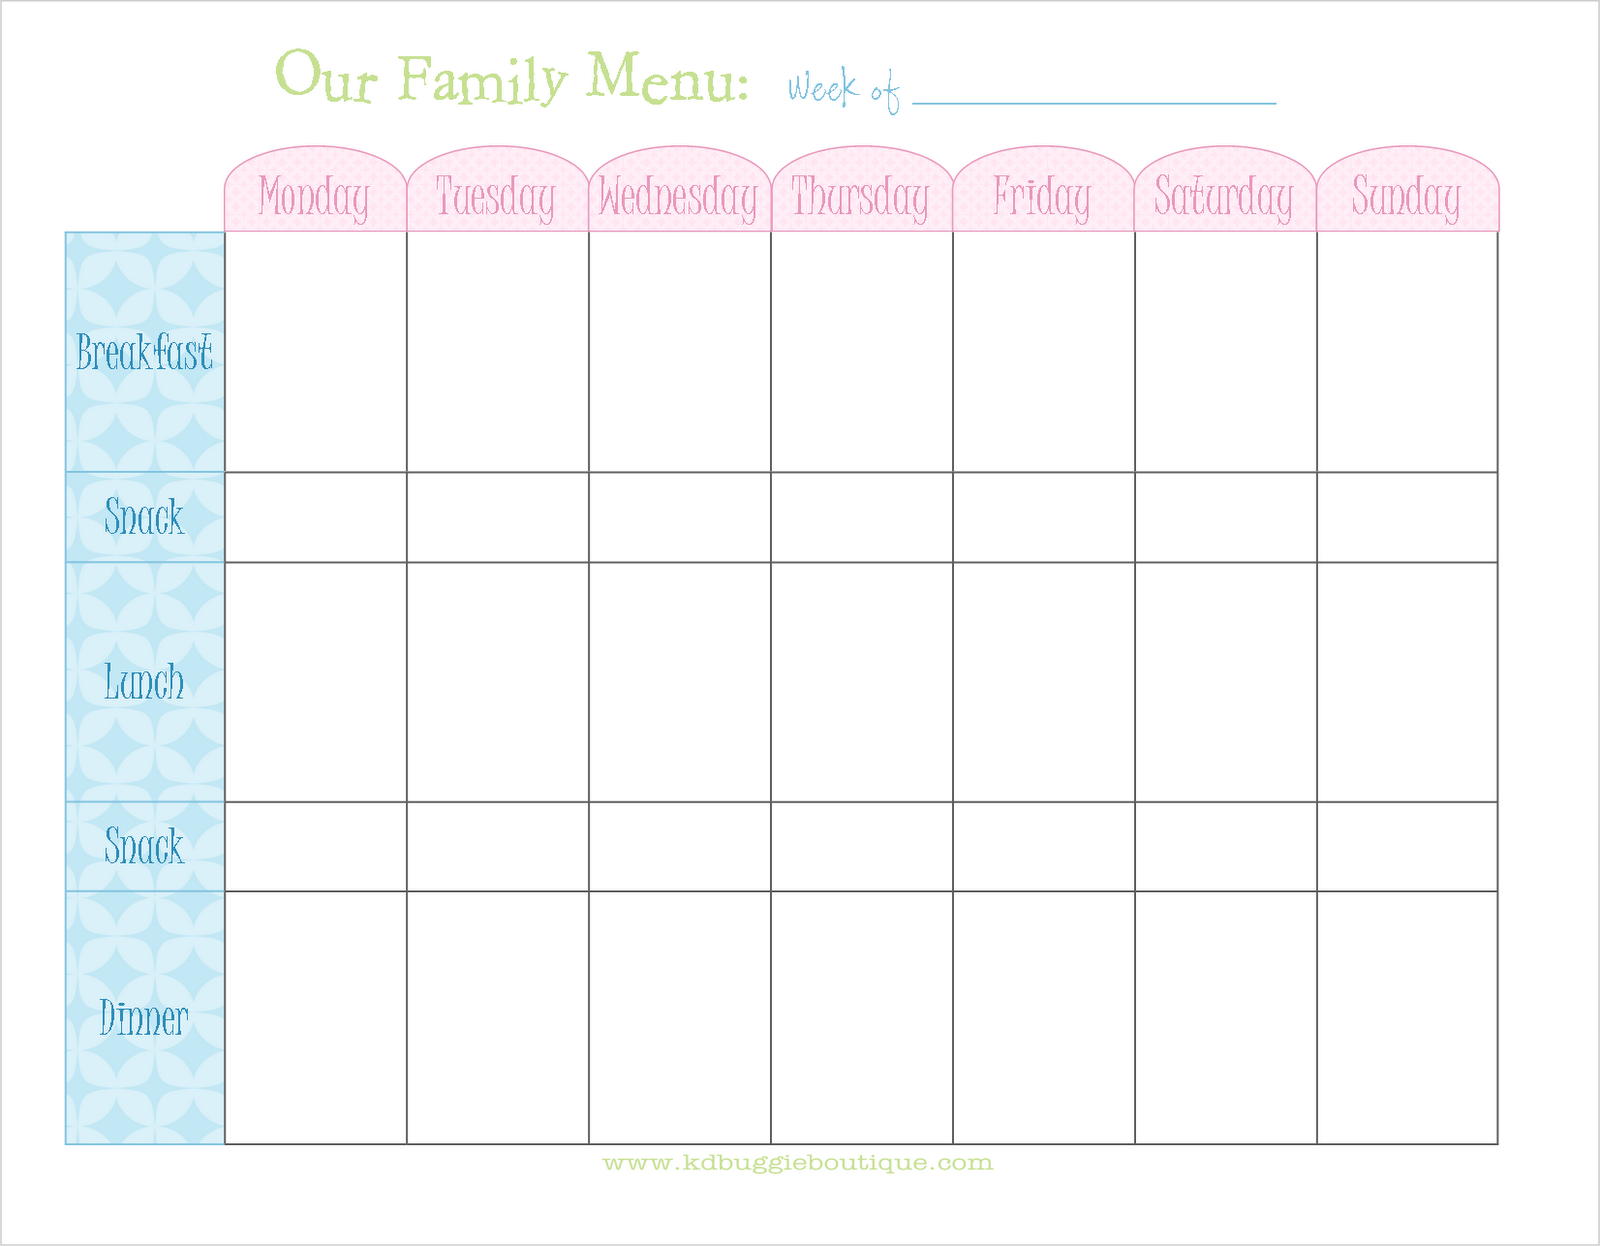 Free Weekly Menu Planner With Snacks  5 Meal Plan  Free Weekly Menu Templates